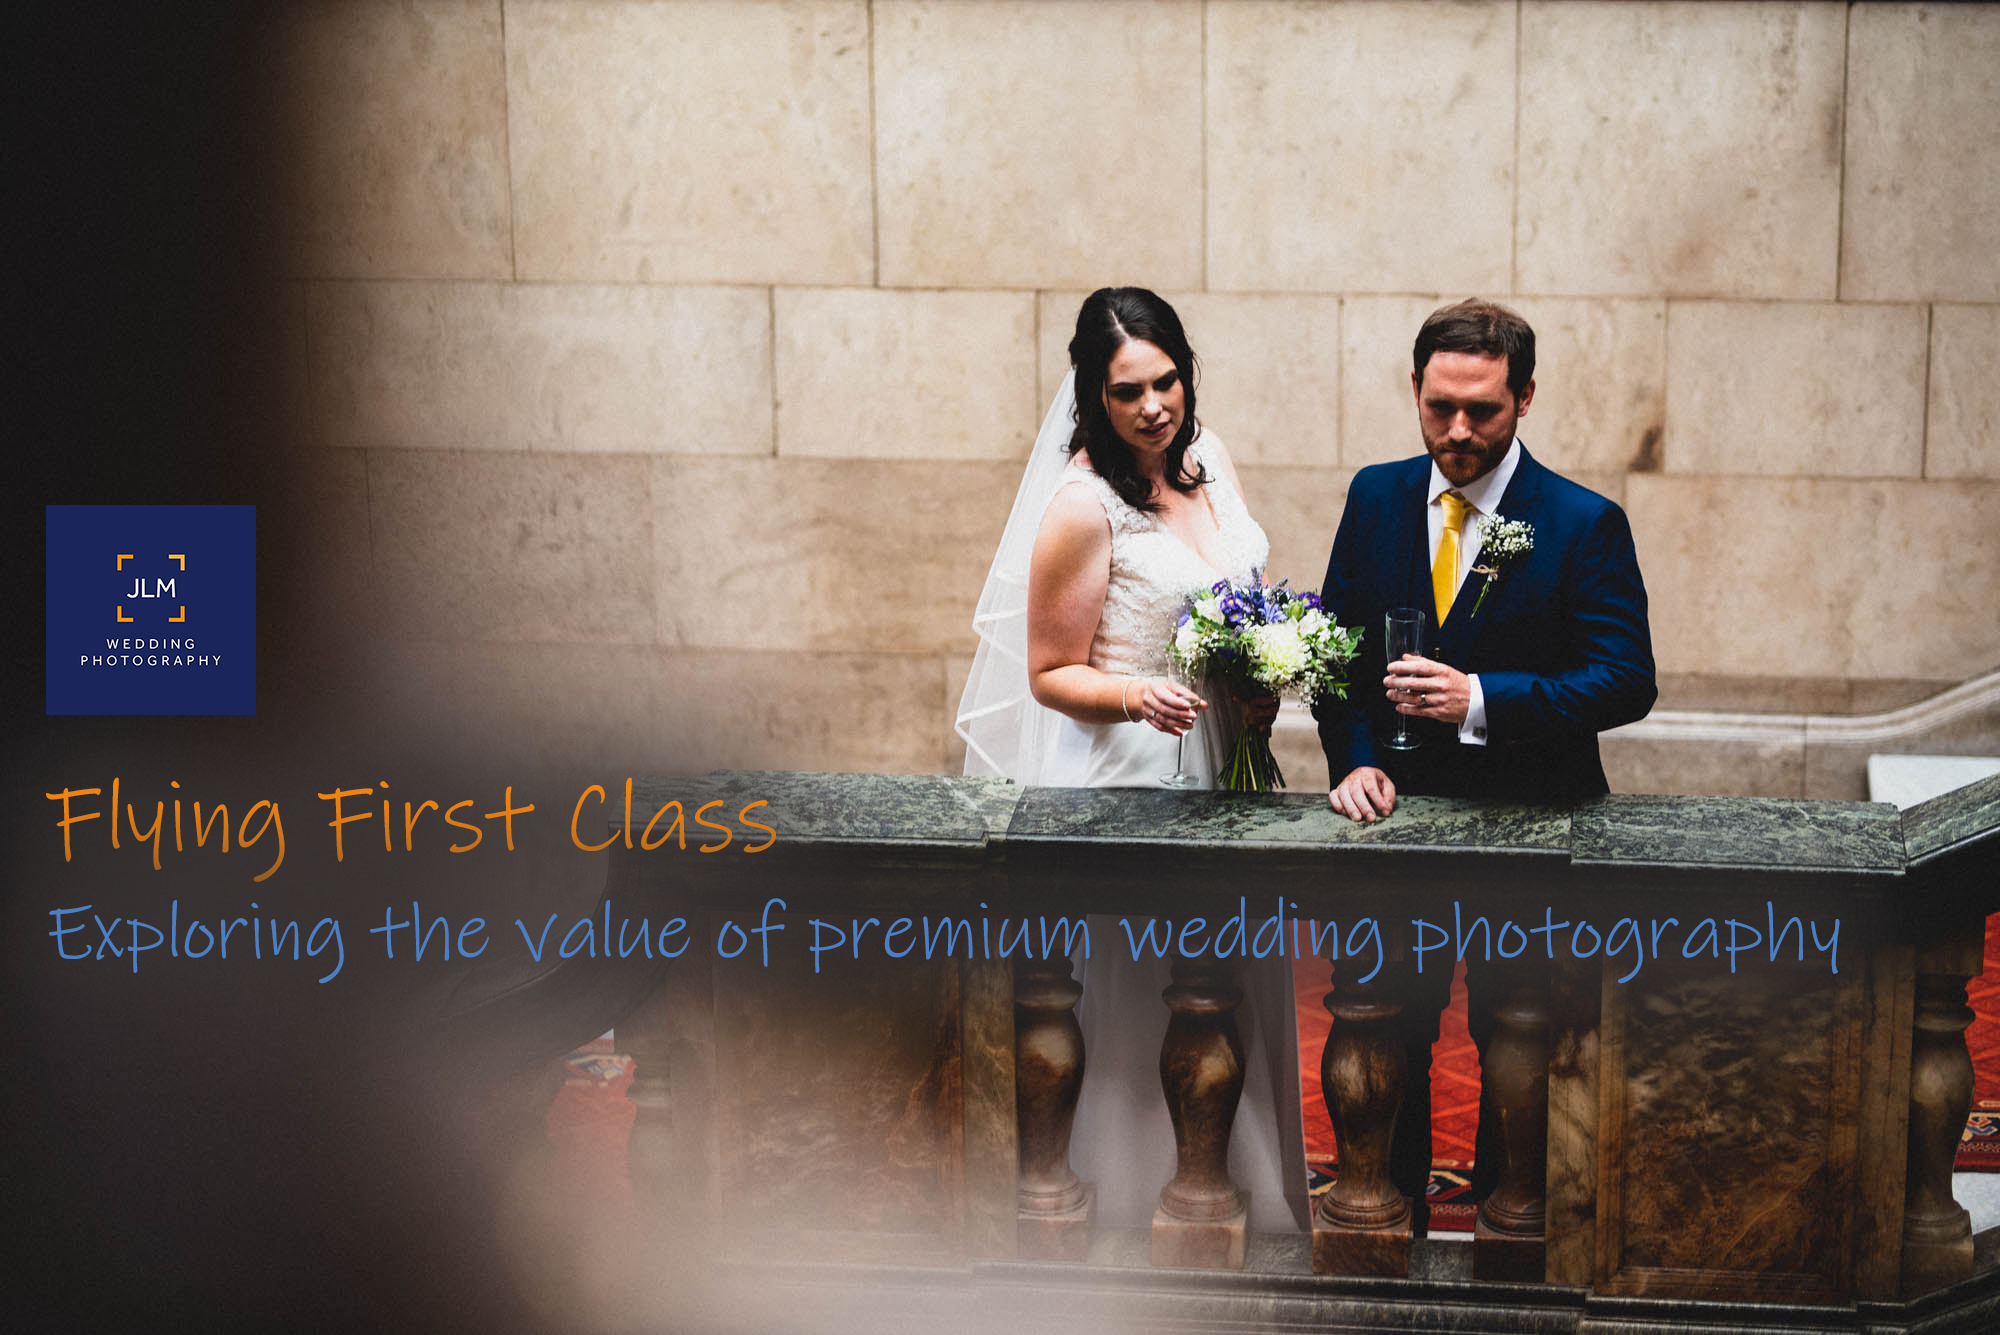 Flying First Class :: The Value of Premium Wedding Photography